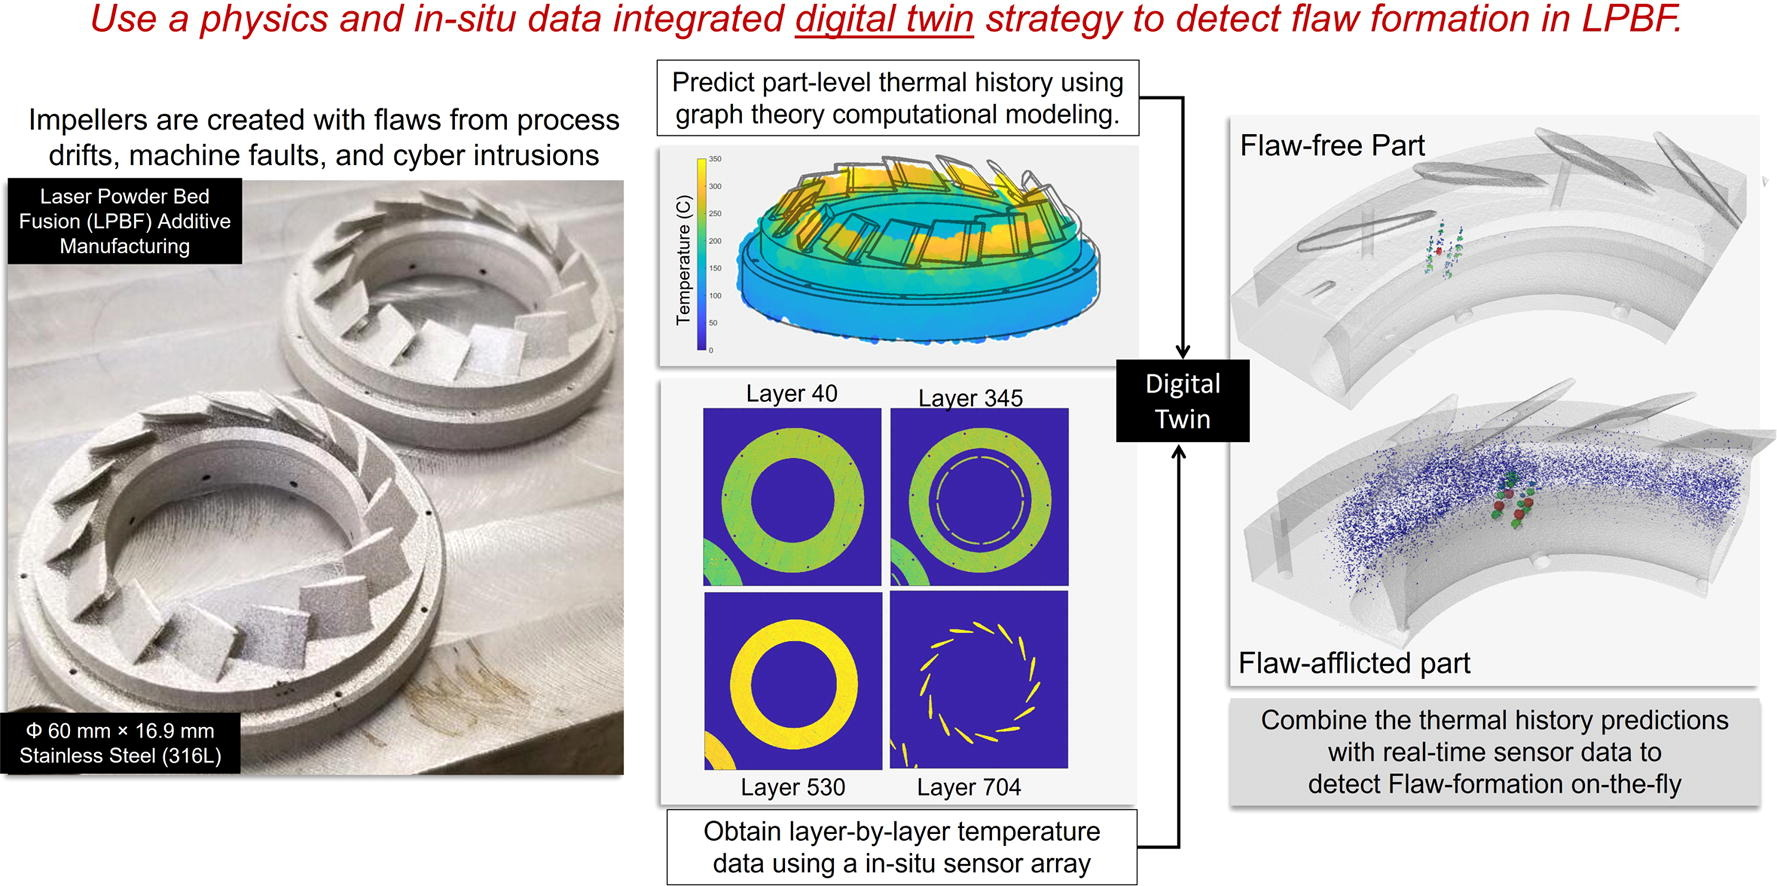 The researchers' physics and data integrated digital twin strategy. Image via Materials & Design.